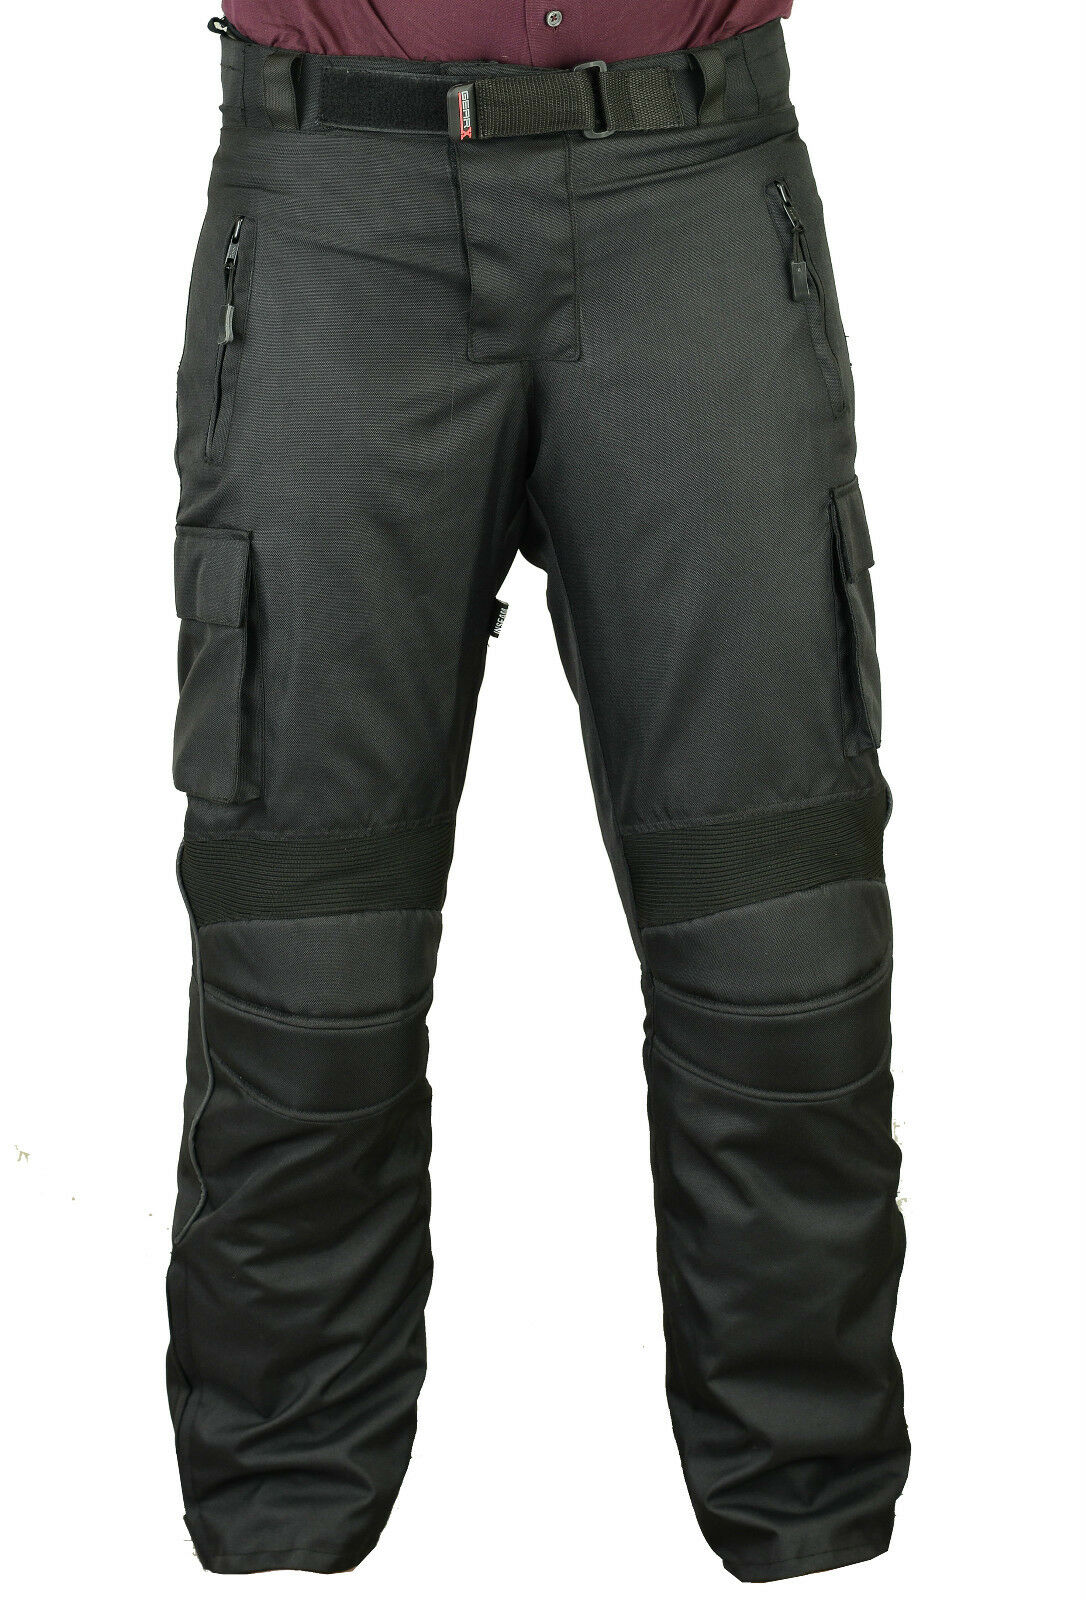 GearX Waterproof Motorbike Motorcycle Trousers Mens Protective Pants